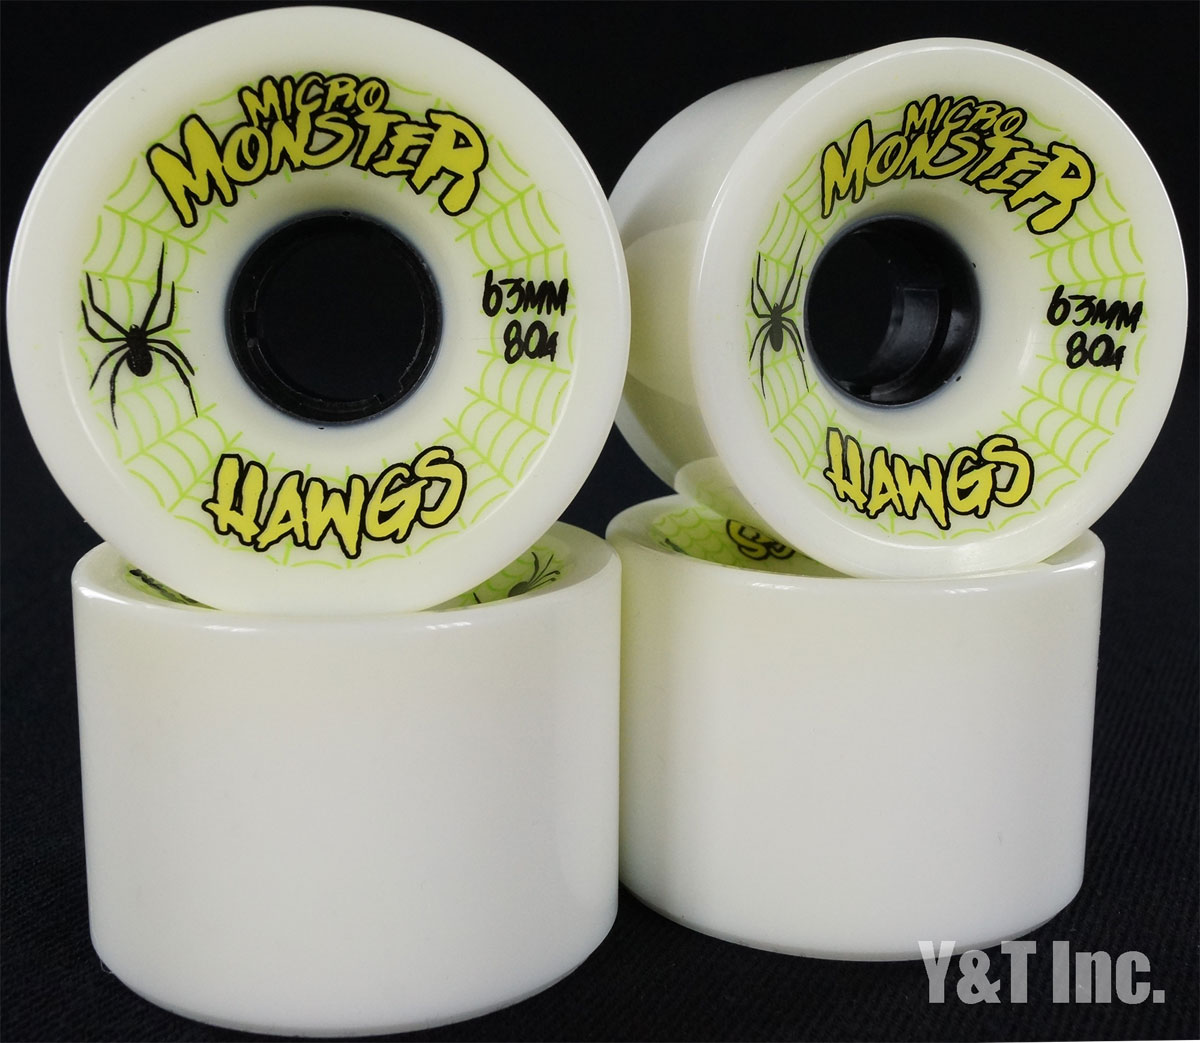 LANDYACHTZ HAWGS MICRO MONSTER 63mm 80a 1